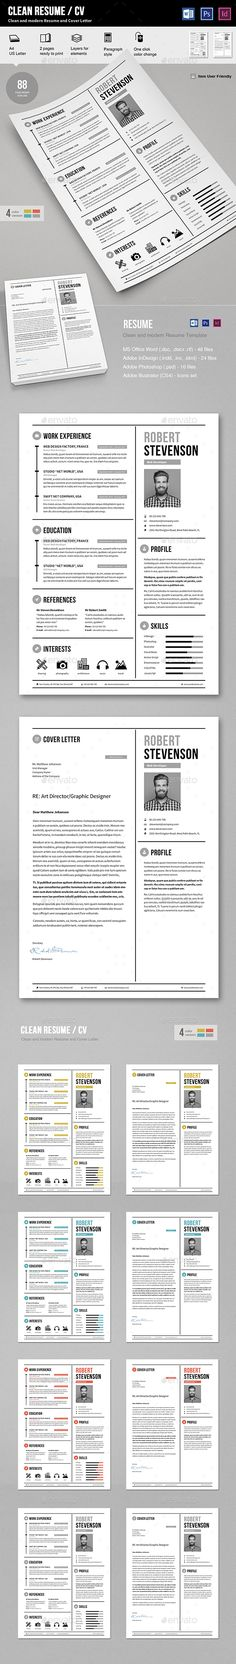 Classy Emerald Complete Resume Pack - how to complete a resume